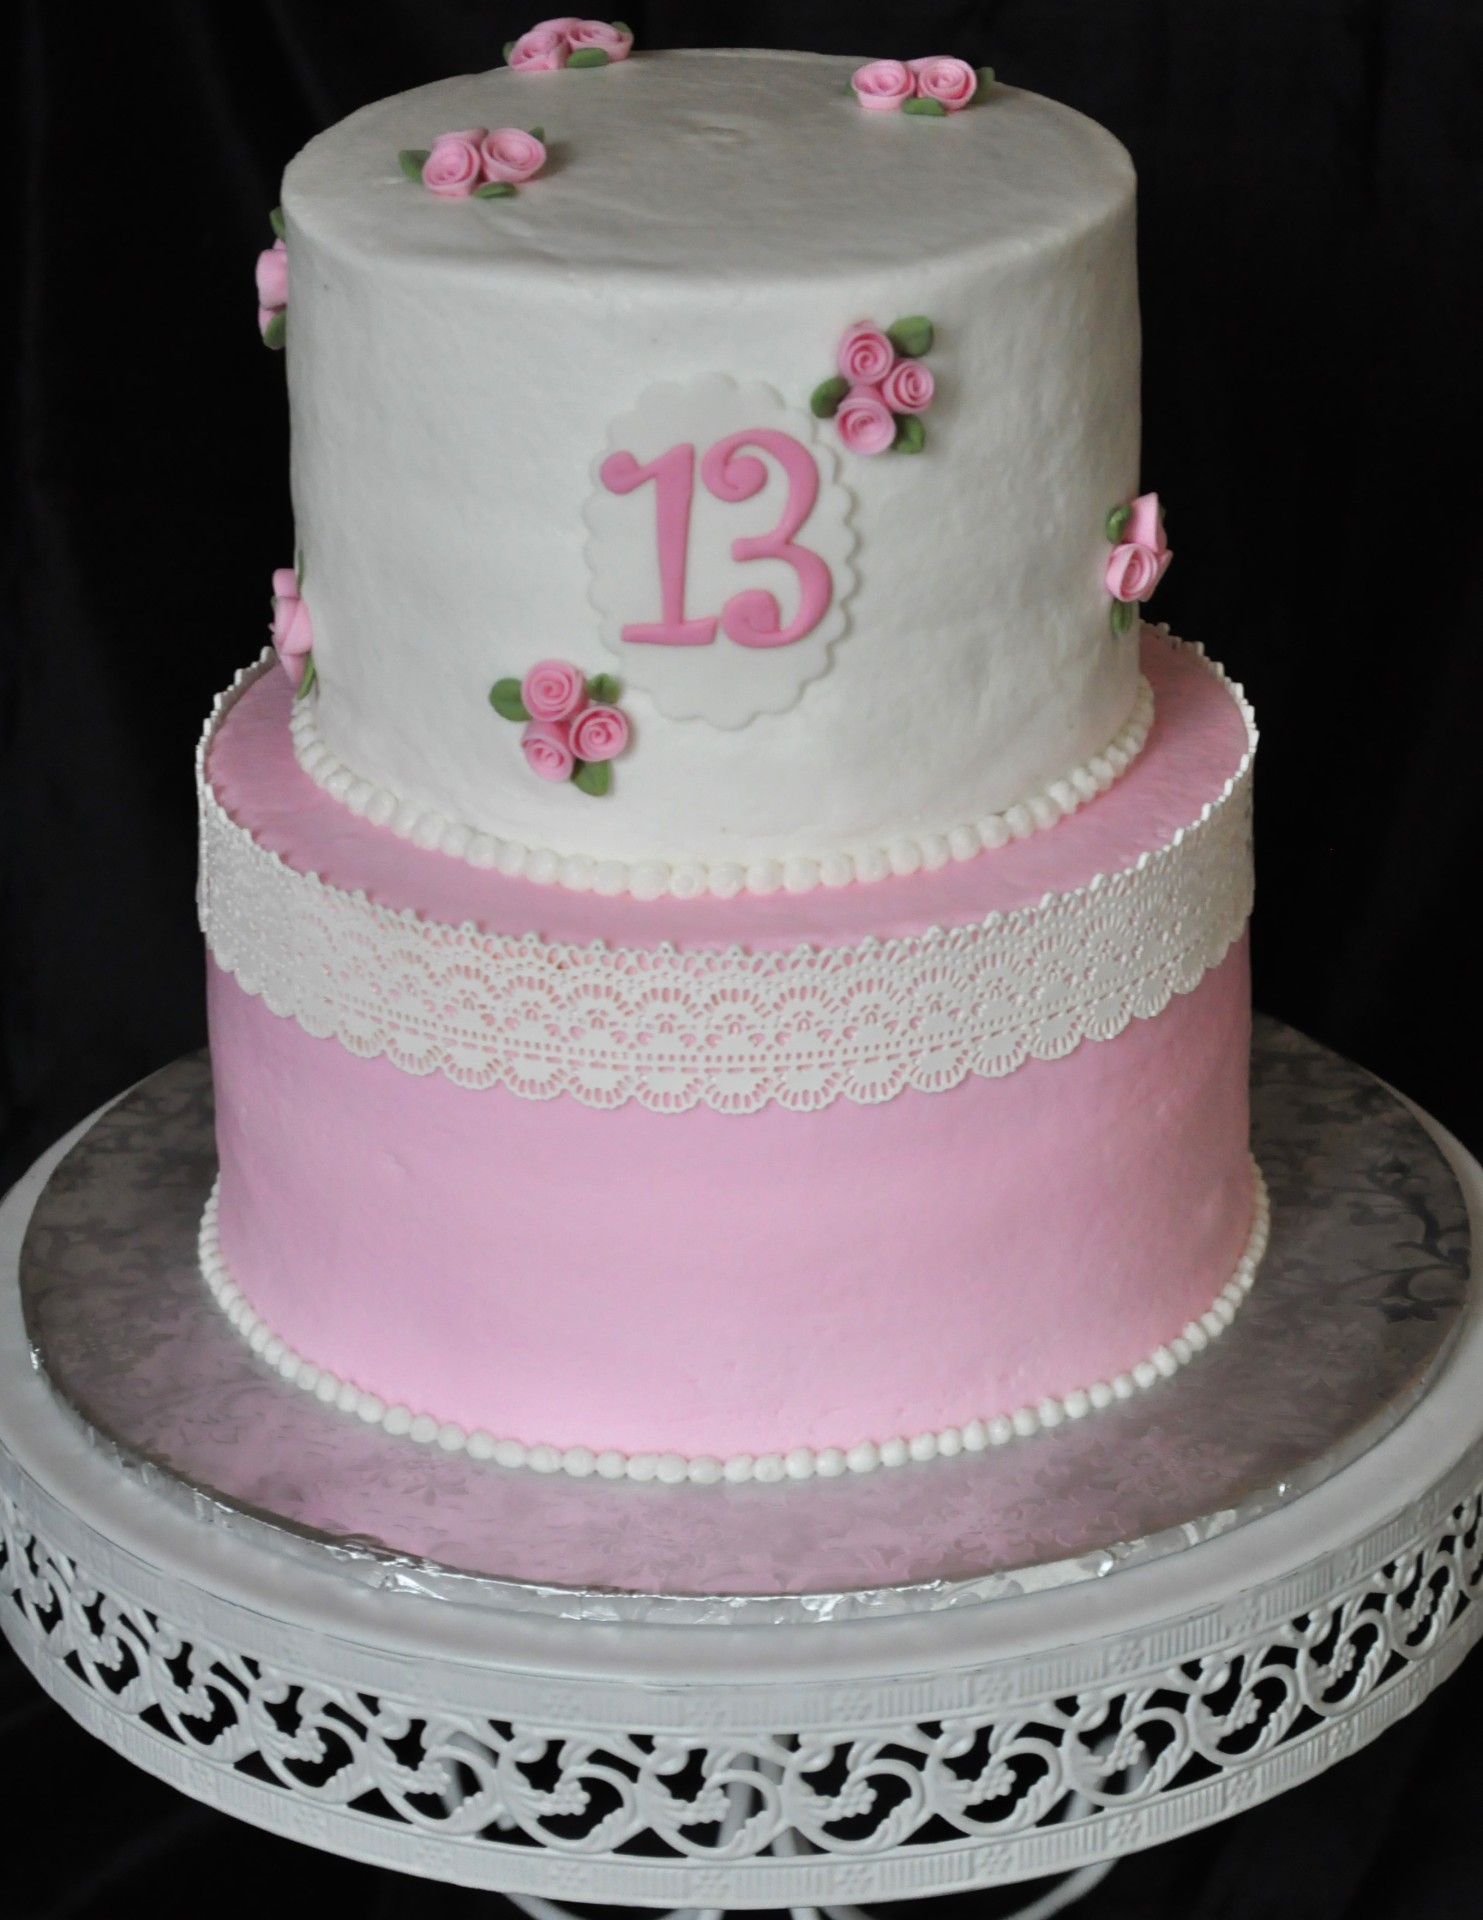 Shabby Chic cake, 13th birthday cake